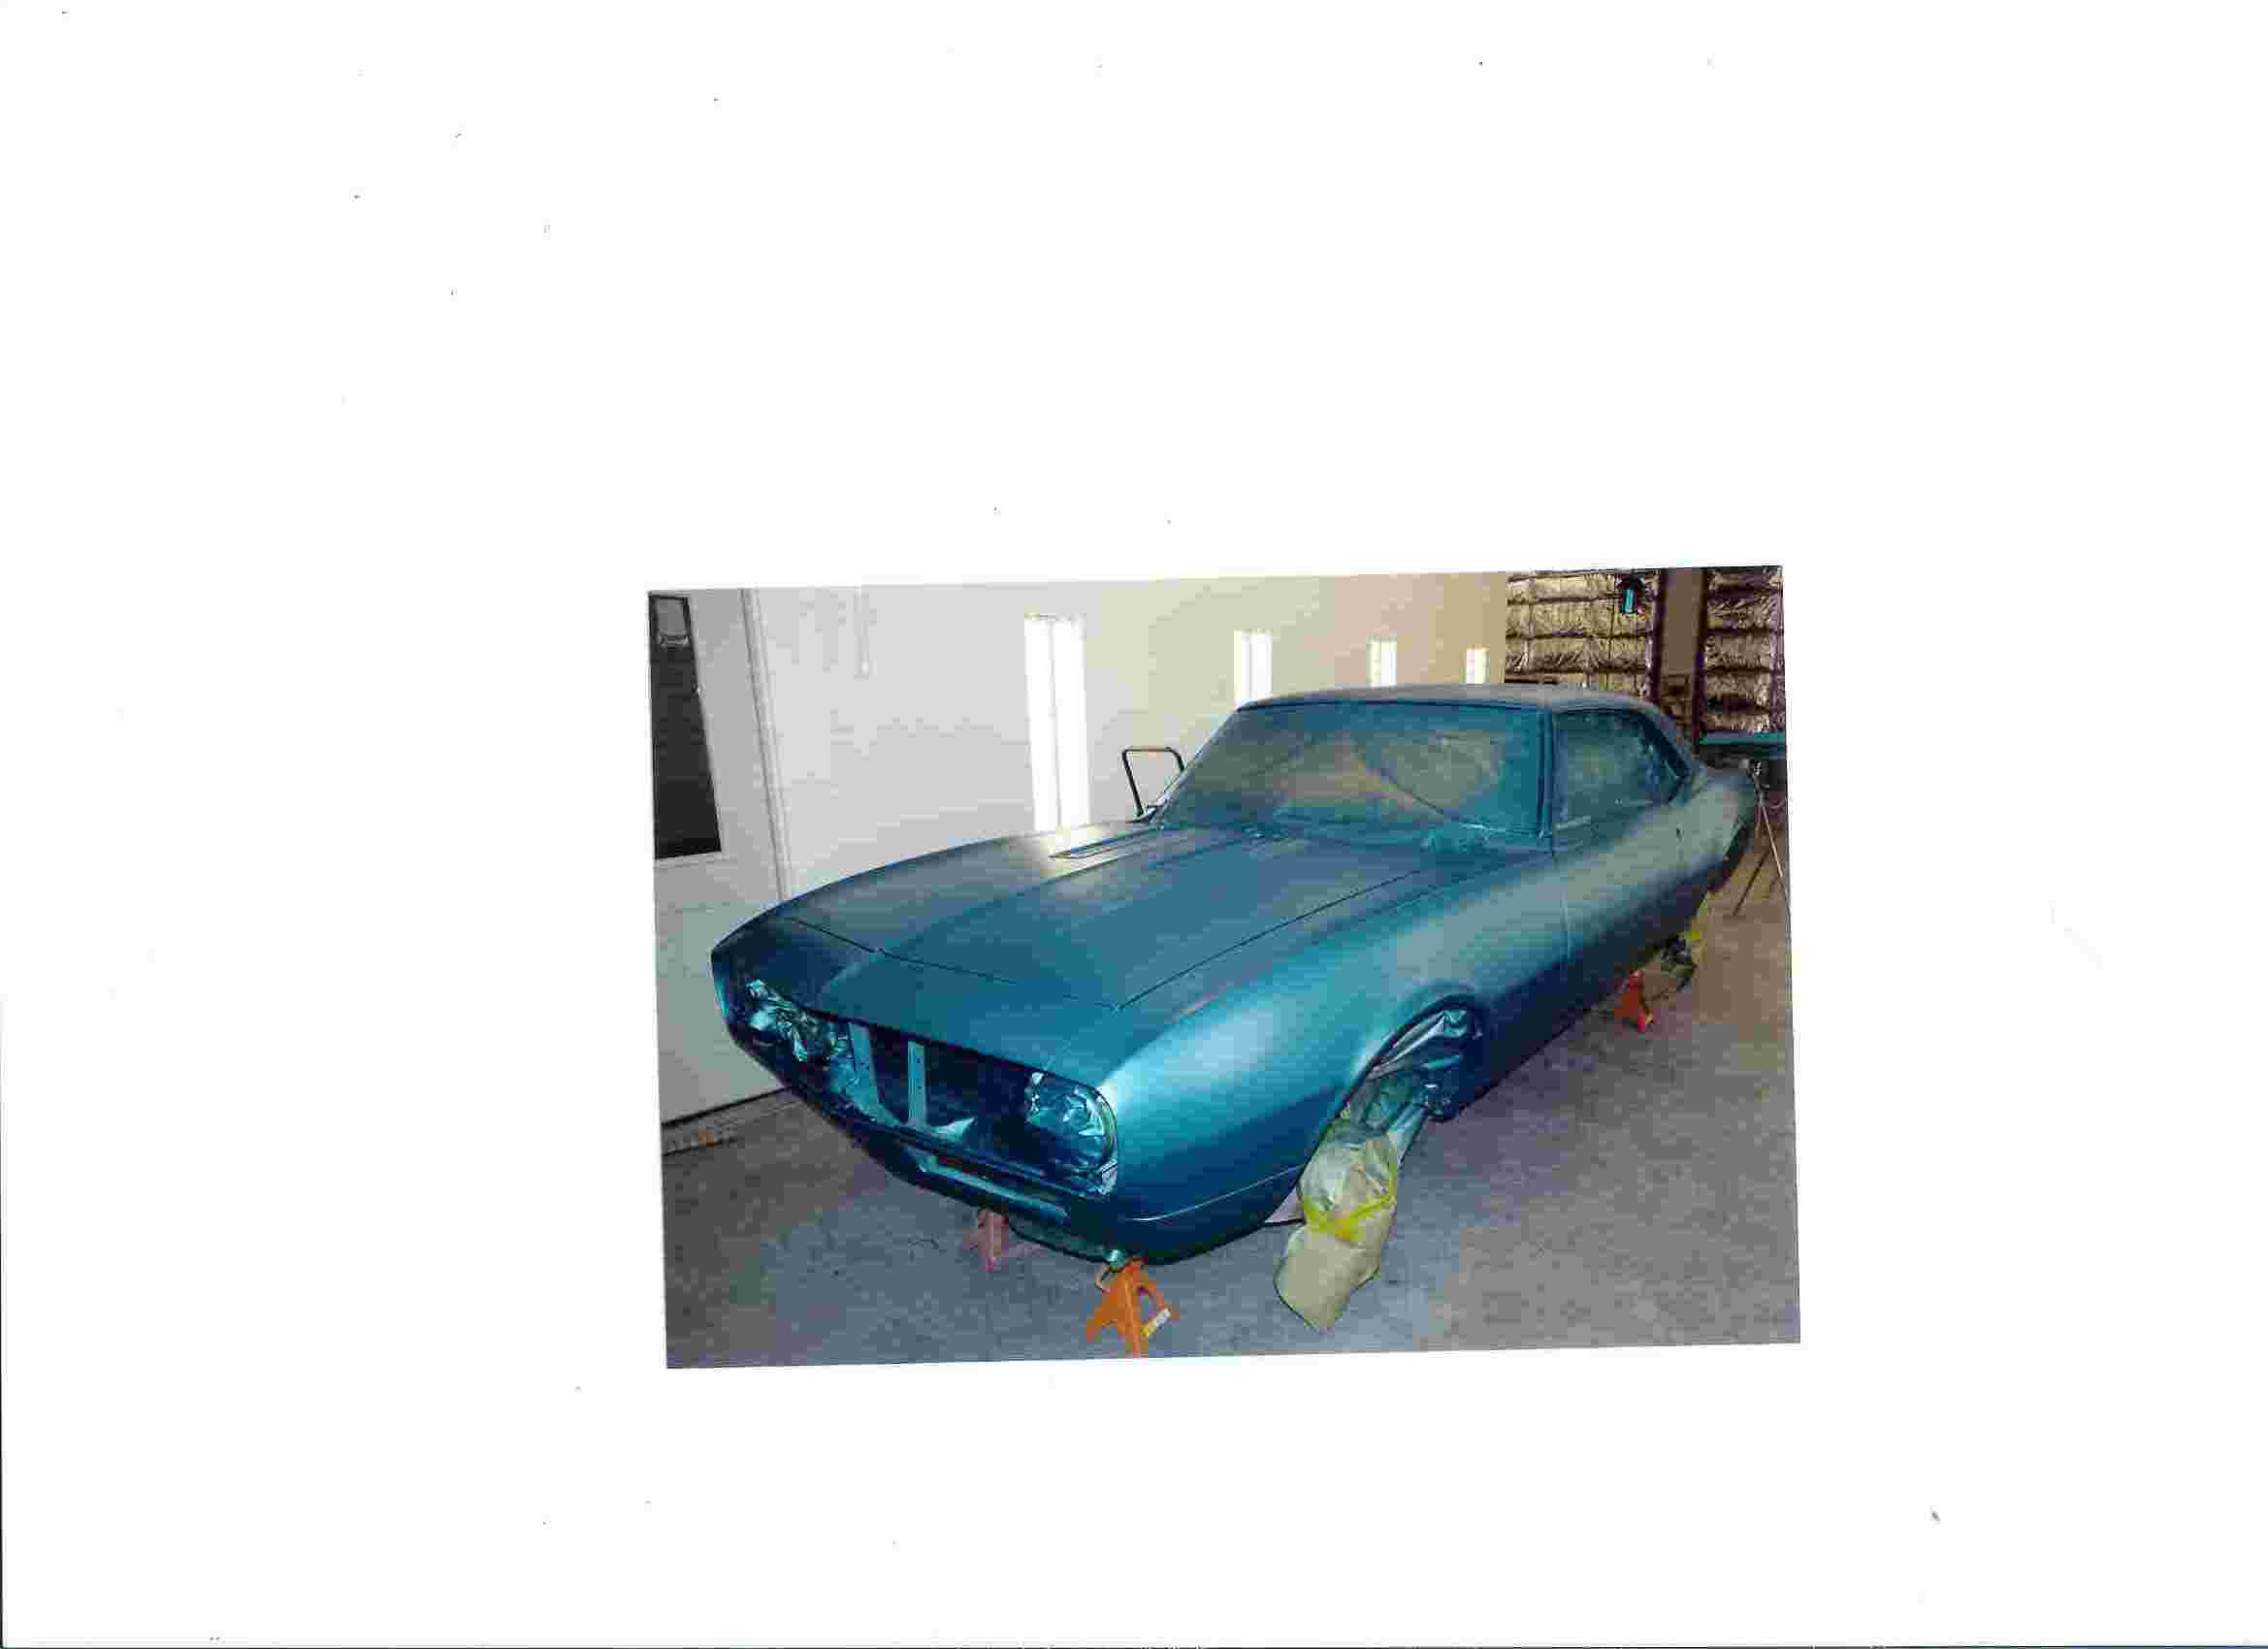 Click image for larger version  Name:car.jpg Views:79 Size:78.0 KB ID:3411